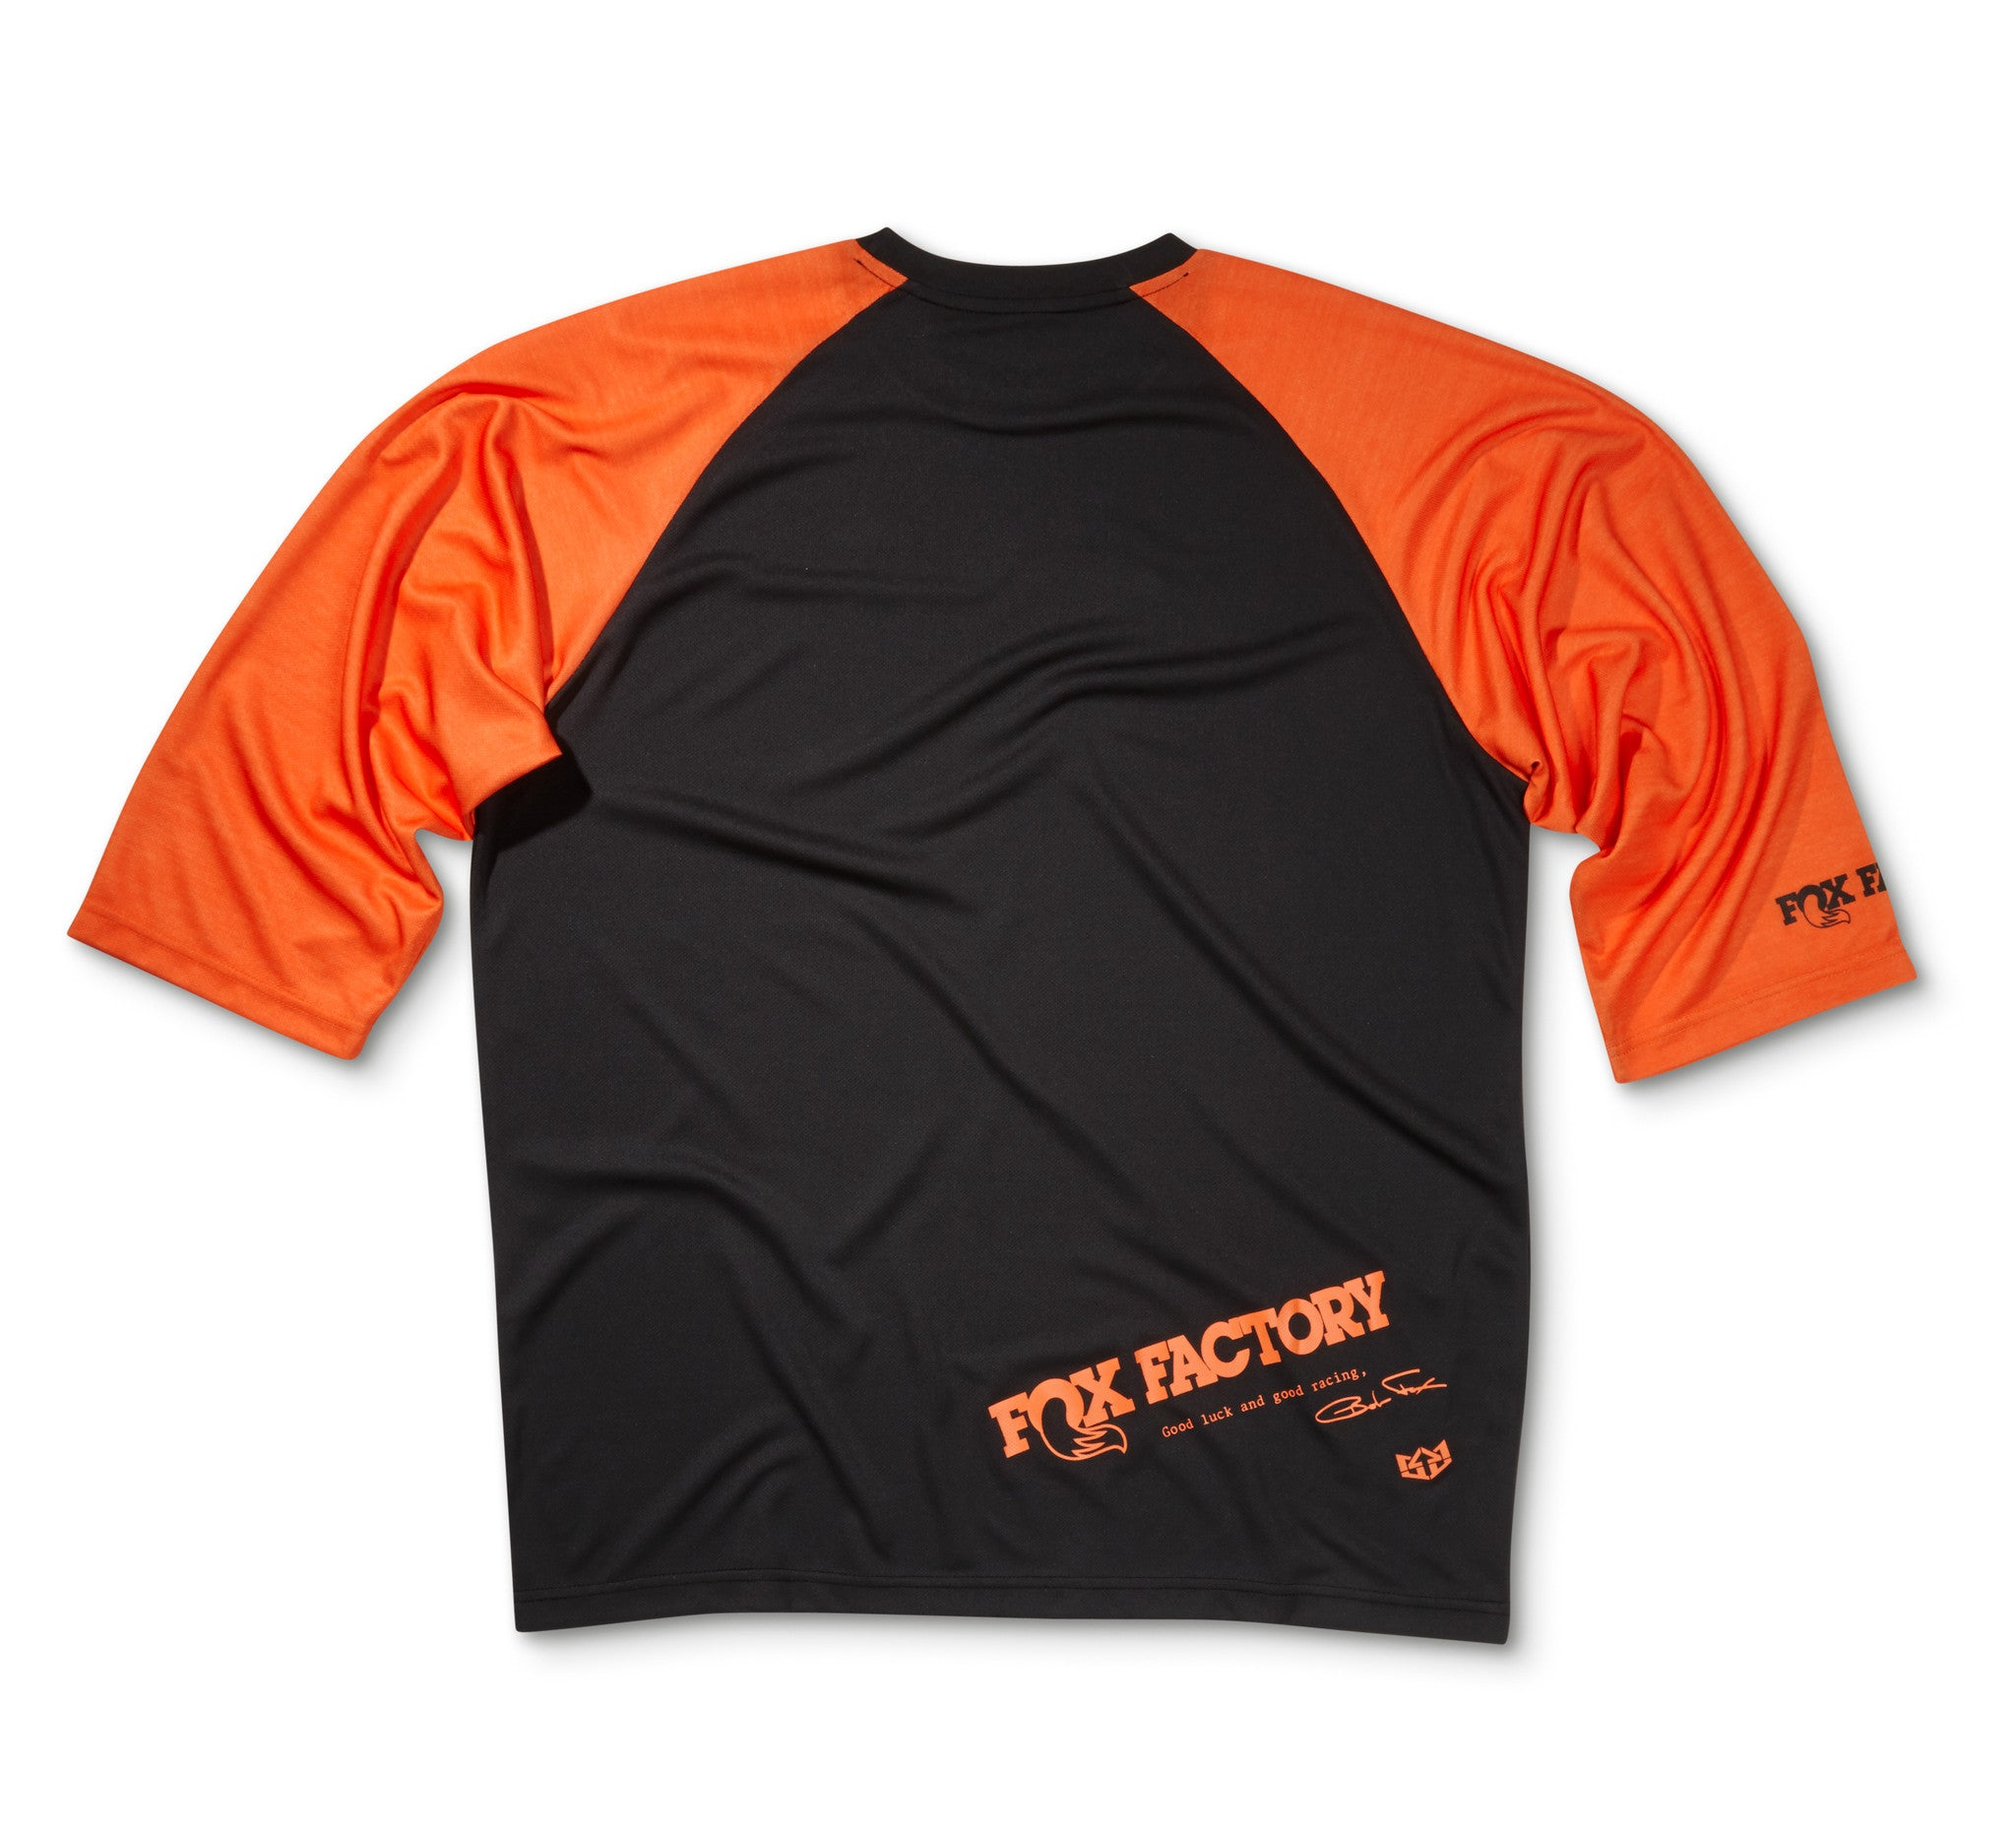 FOX Heritage 3/4 Raglan Jersey, Black/Orange